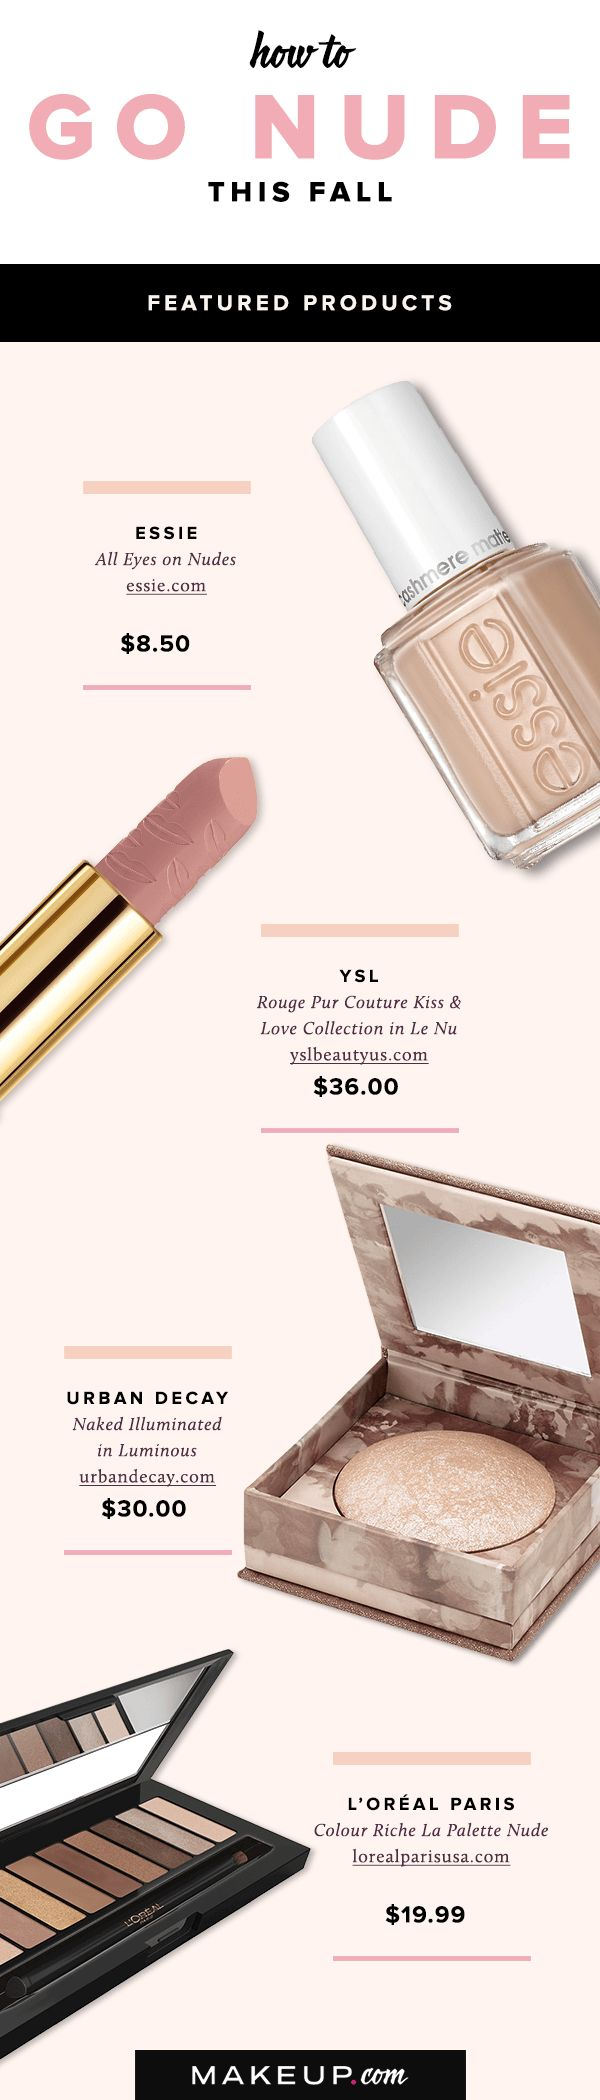 Nude lipsticks, nail polish and eye makeup is always a great way to go if you want to achieve a pretty, classic look this fall. We've put together a guide and tutorial filled with tricks on how to wear nude makeup this autumn.